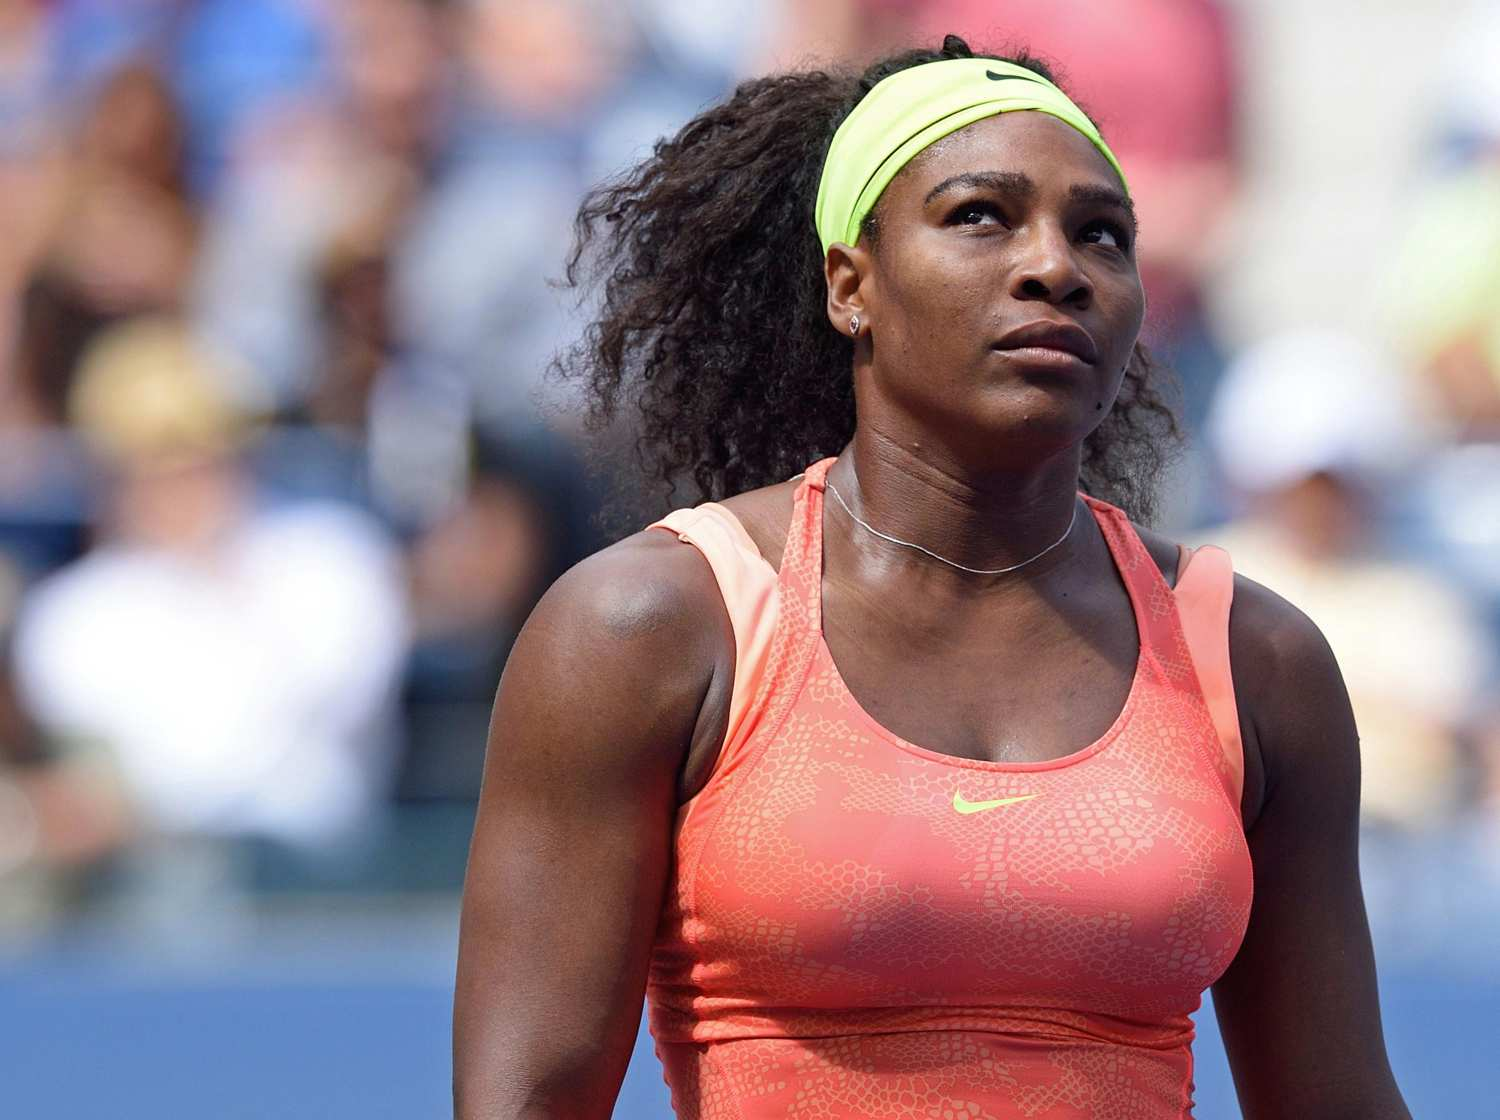 Serena Williams taking break from tennis after US Open injury